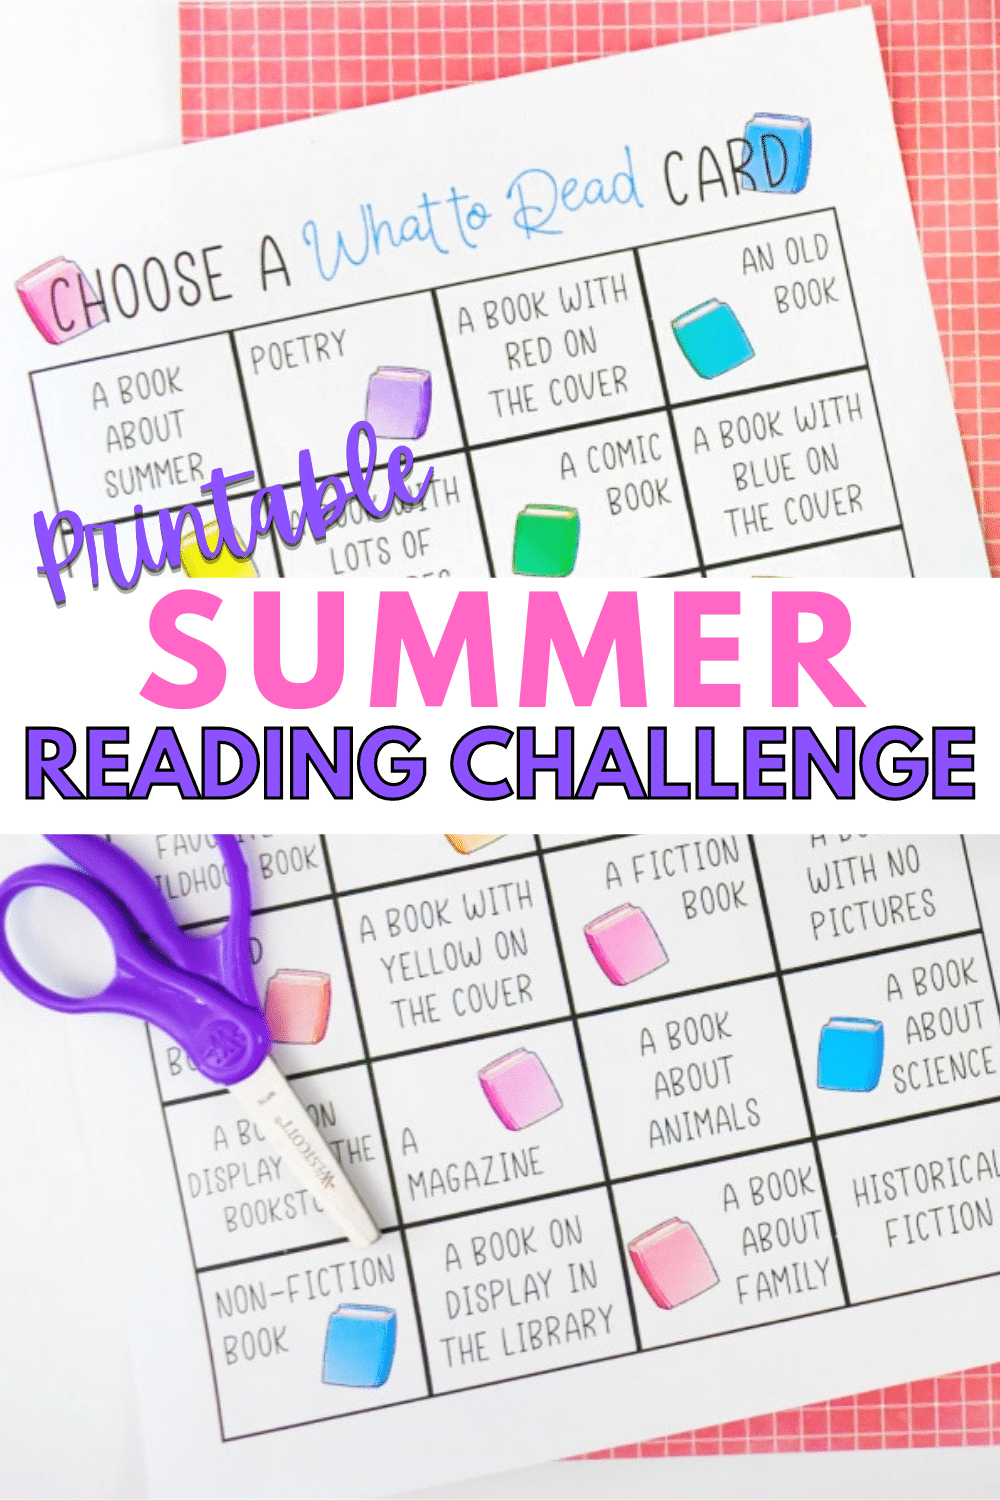 This printable summer reading challenge is the perfect way to make reading fun for kids over the summer months. Challenge kids to read more this summer! #reading #summer #printable via @wondermomwannab